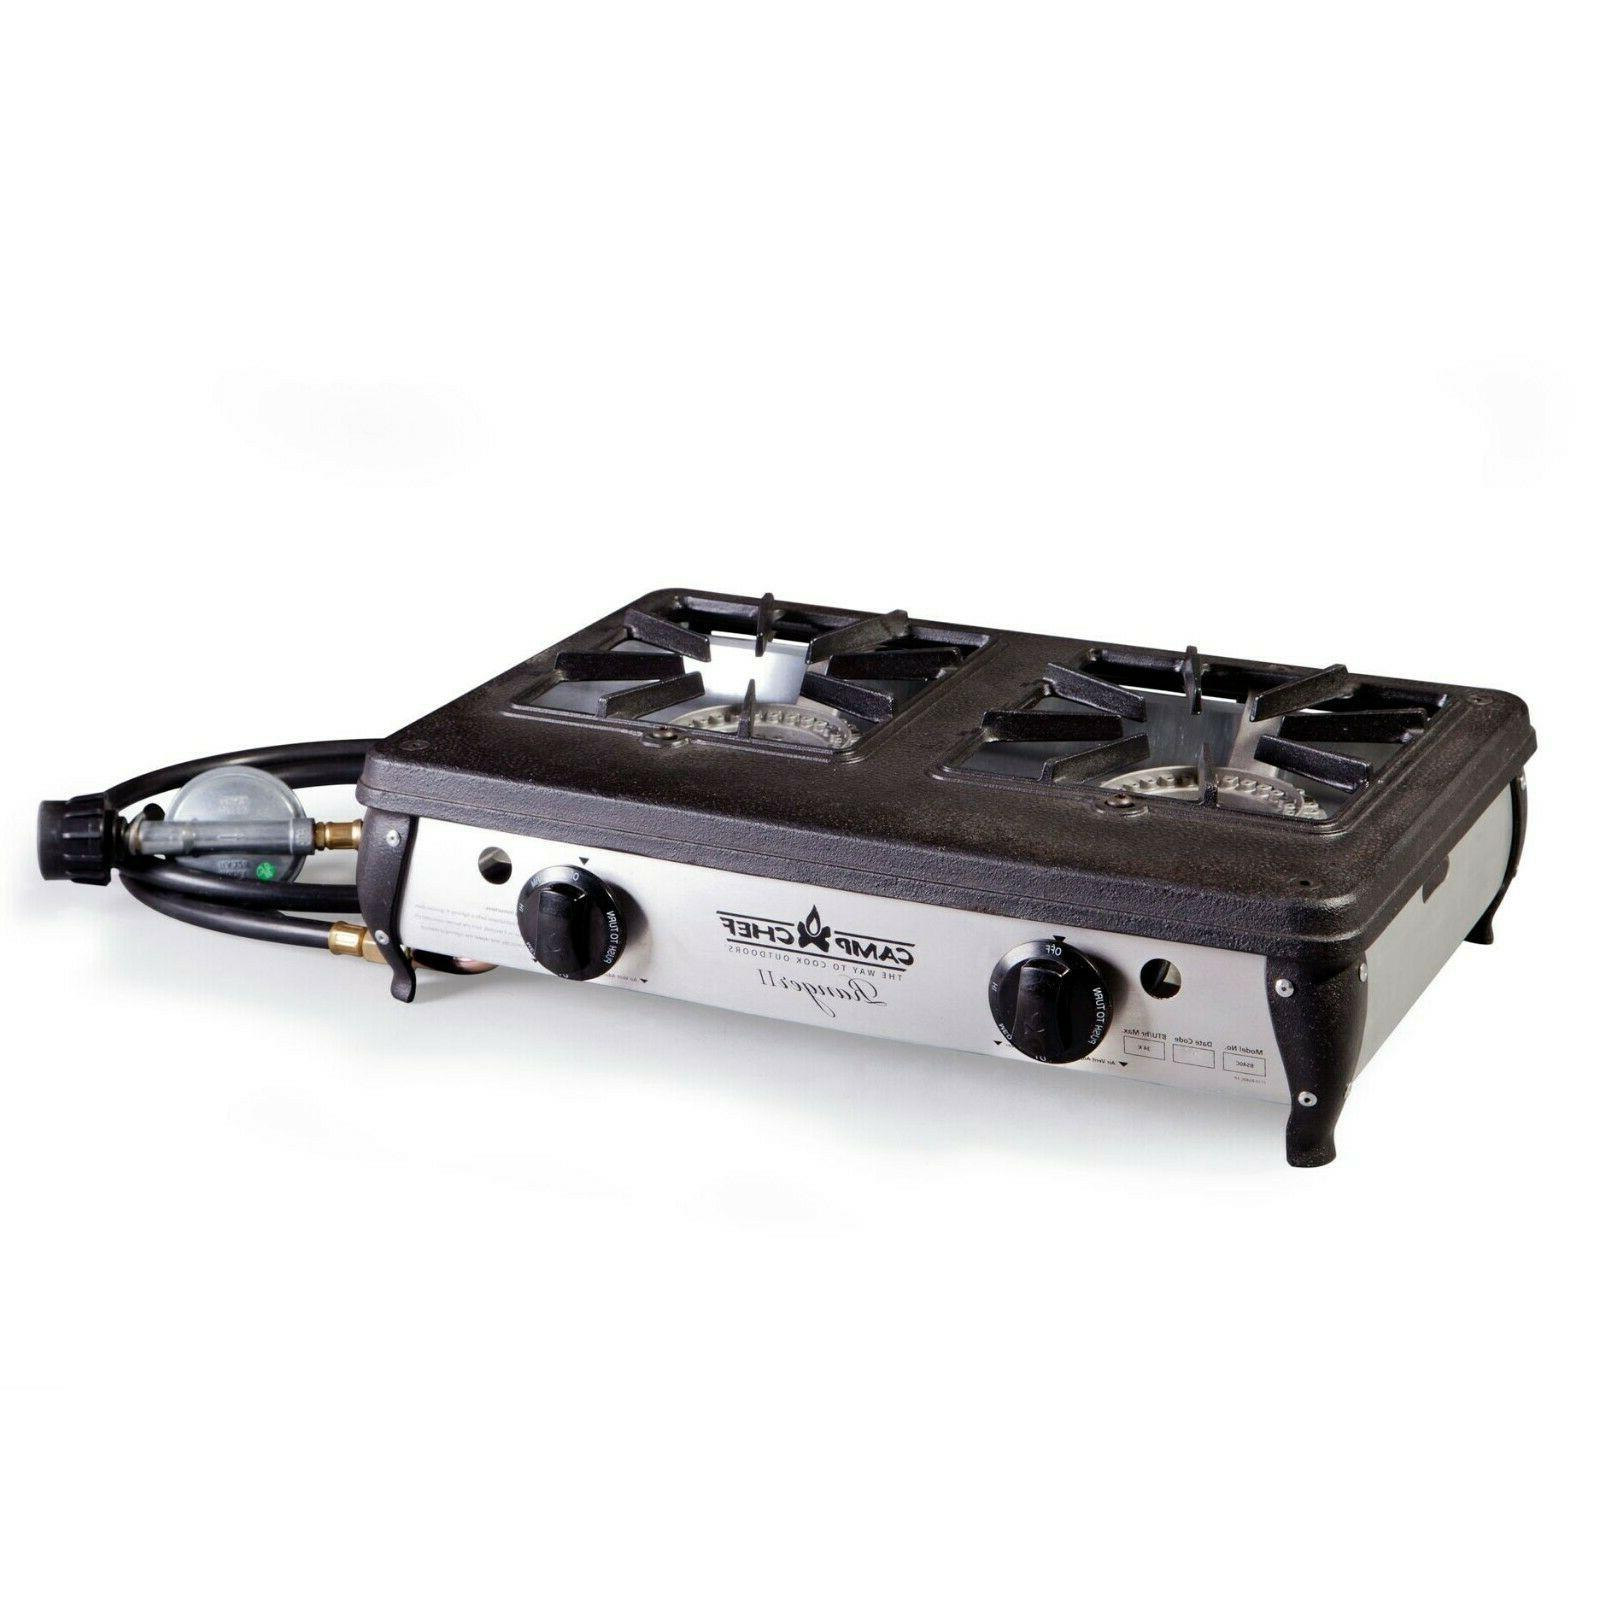 Camping Outdoor Cooking Burner Portable Compact